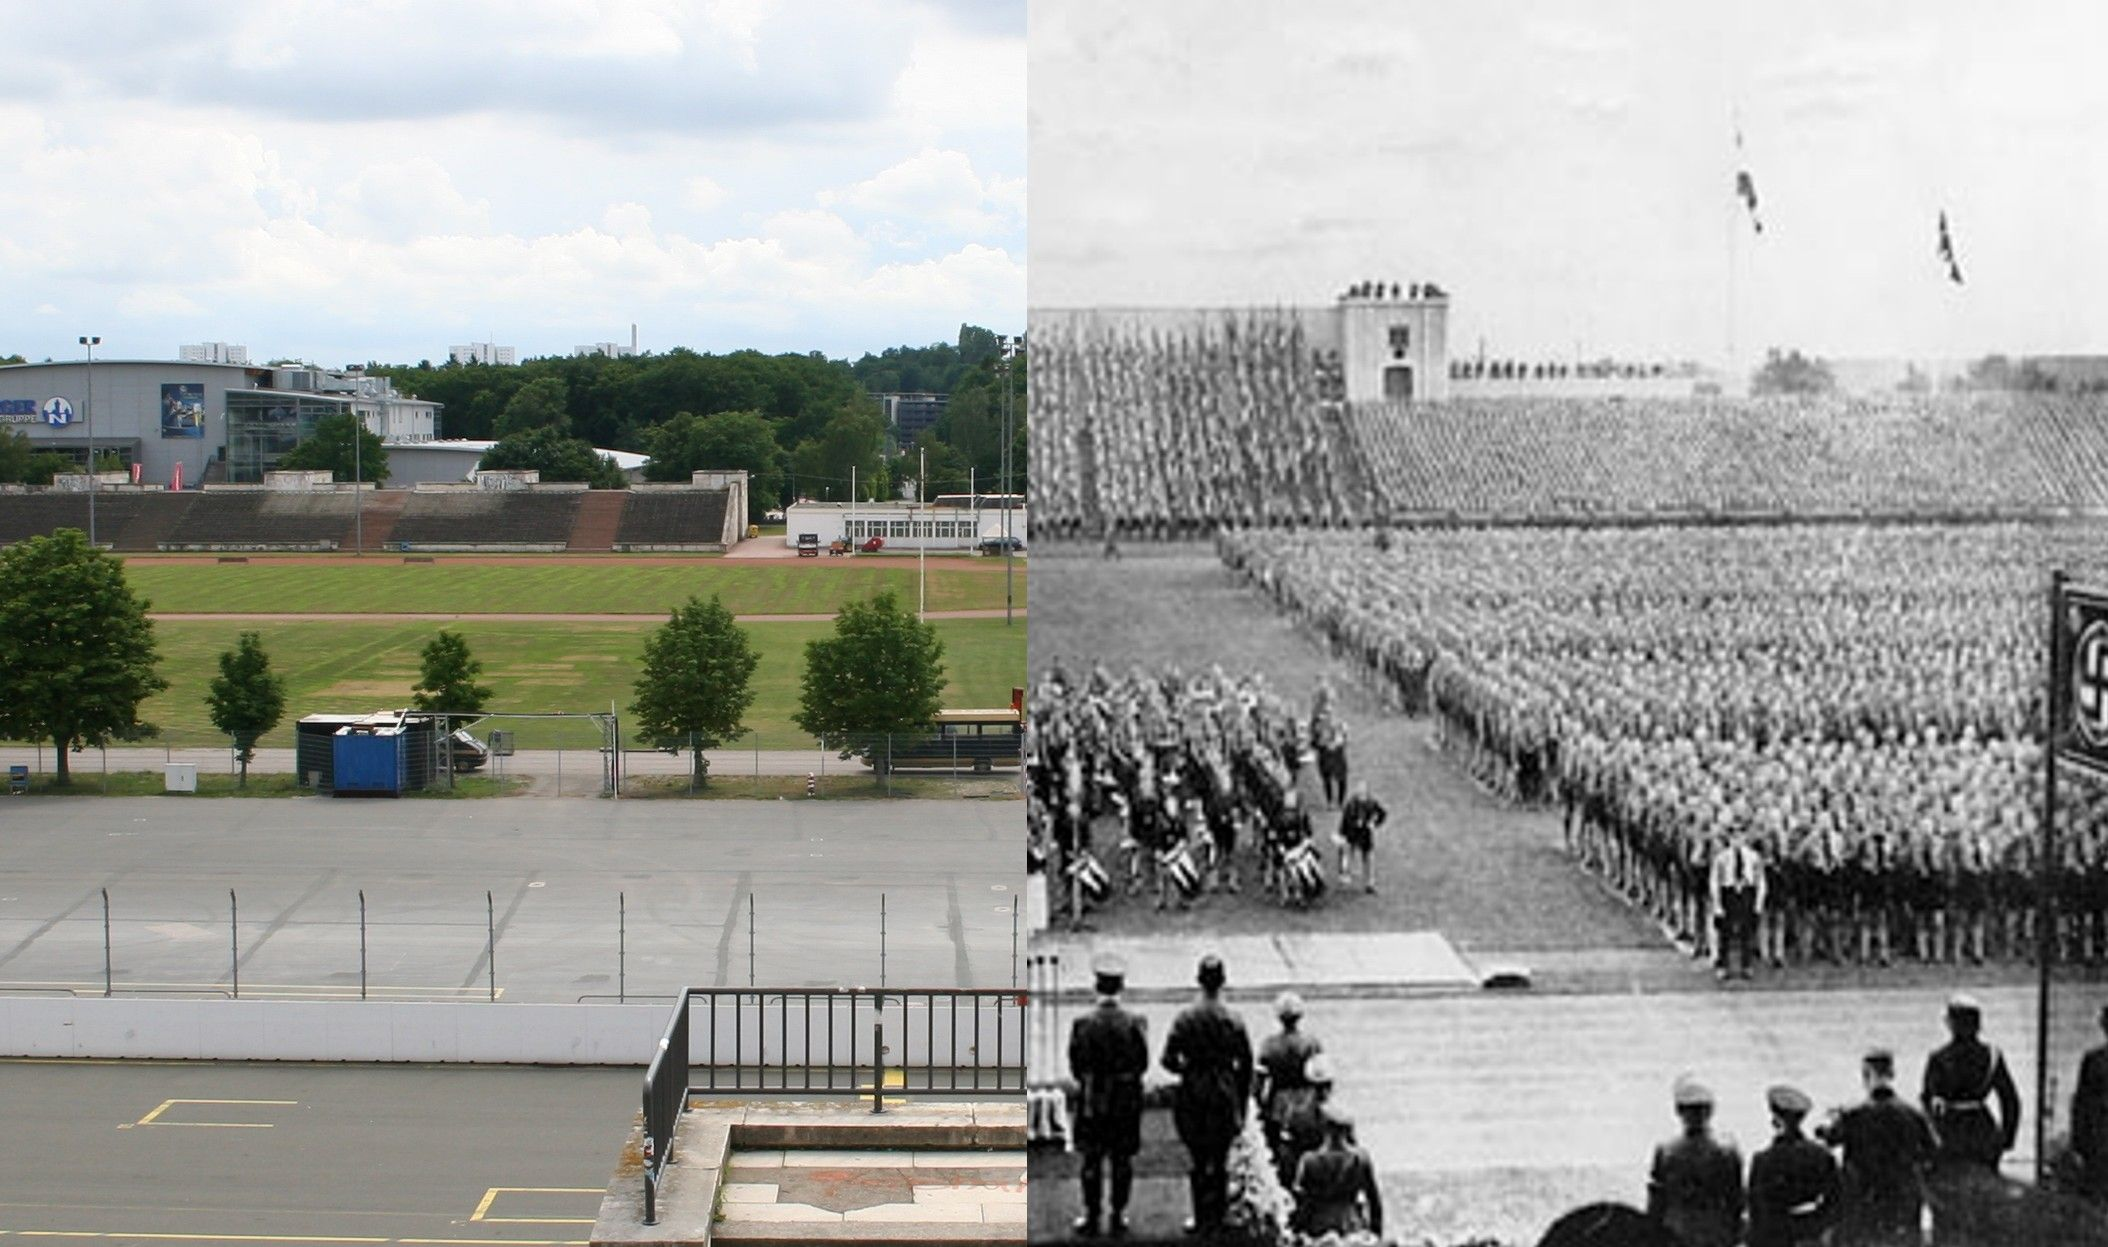 Then And Now In Nuremberg Germany Grand European Tour Part Xvi European Tour Nuremberg Nuremberg Germany